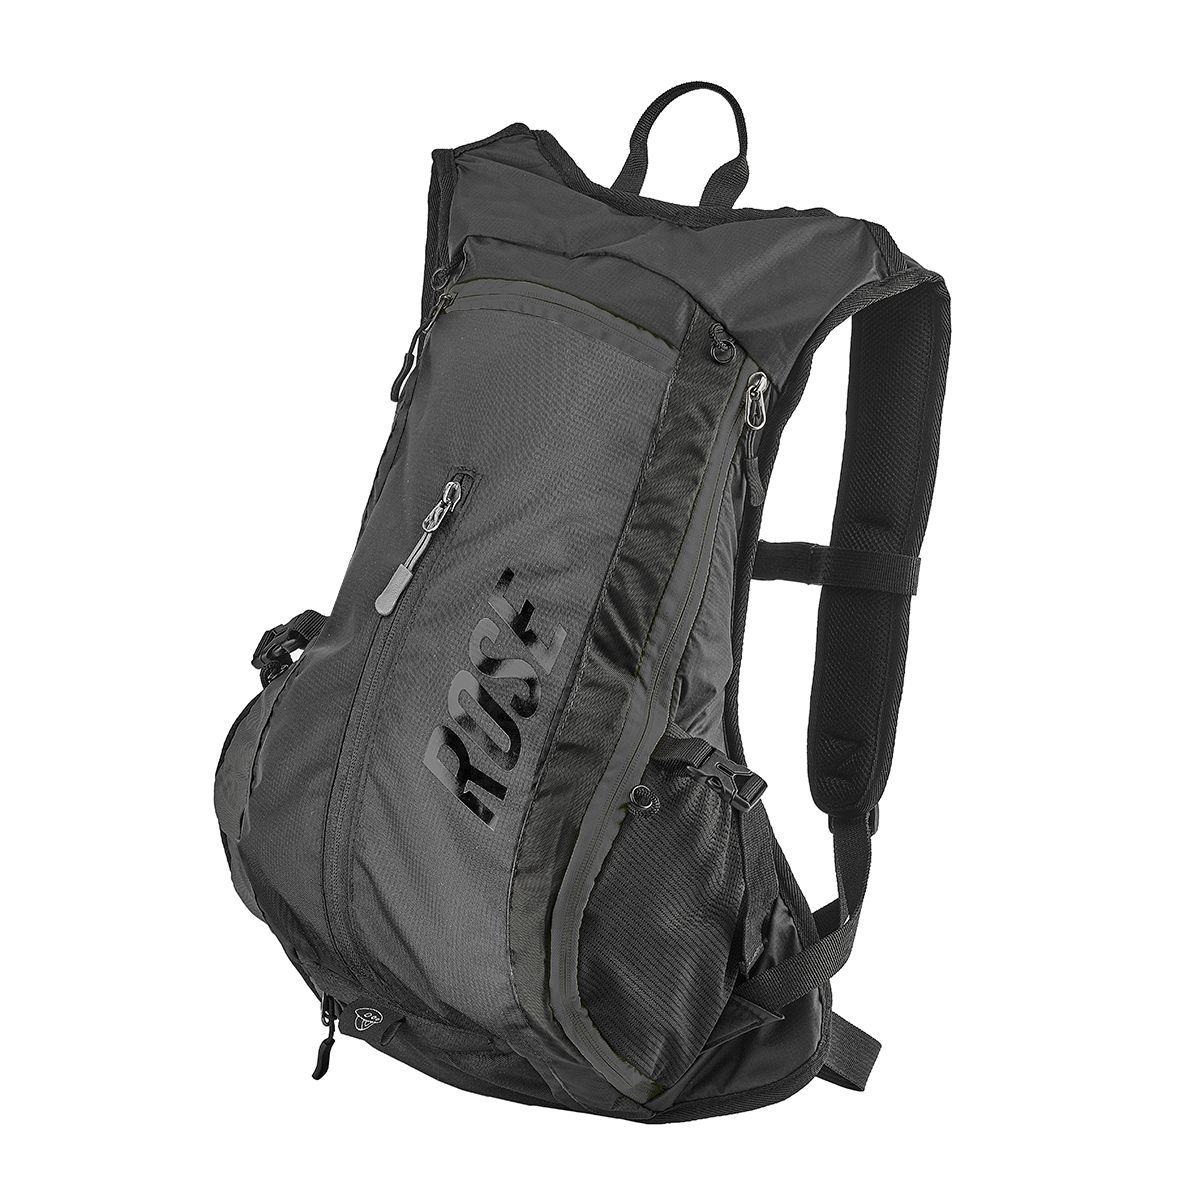 LITE CROSS Hydration Pack